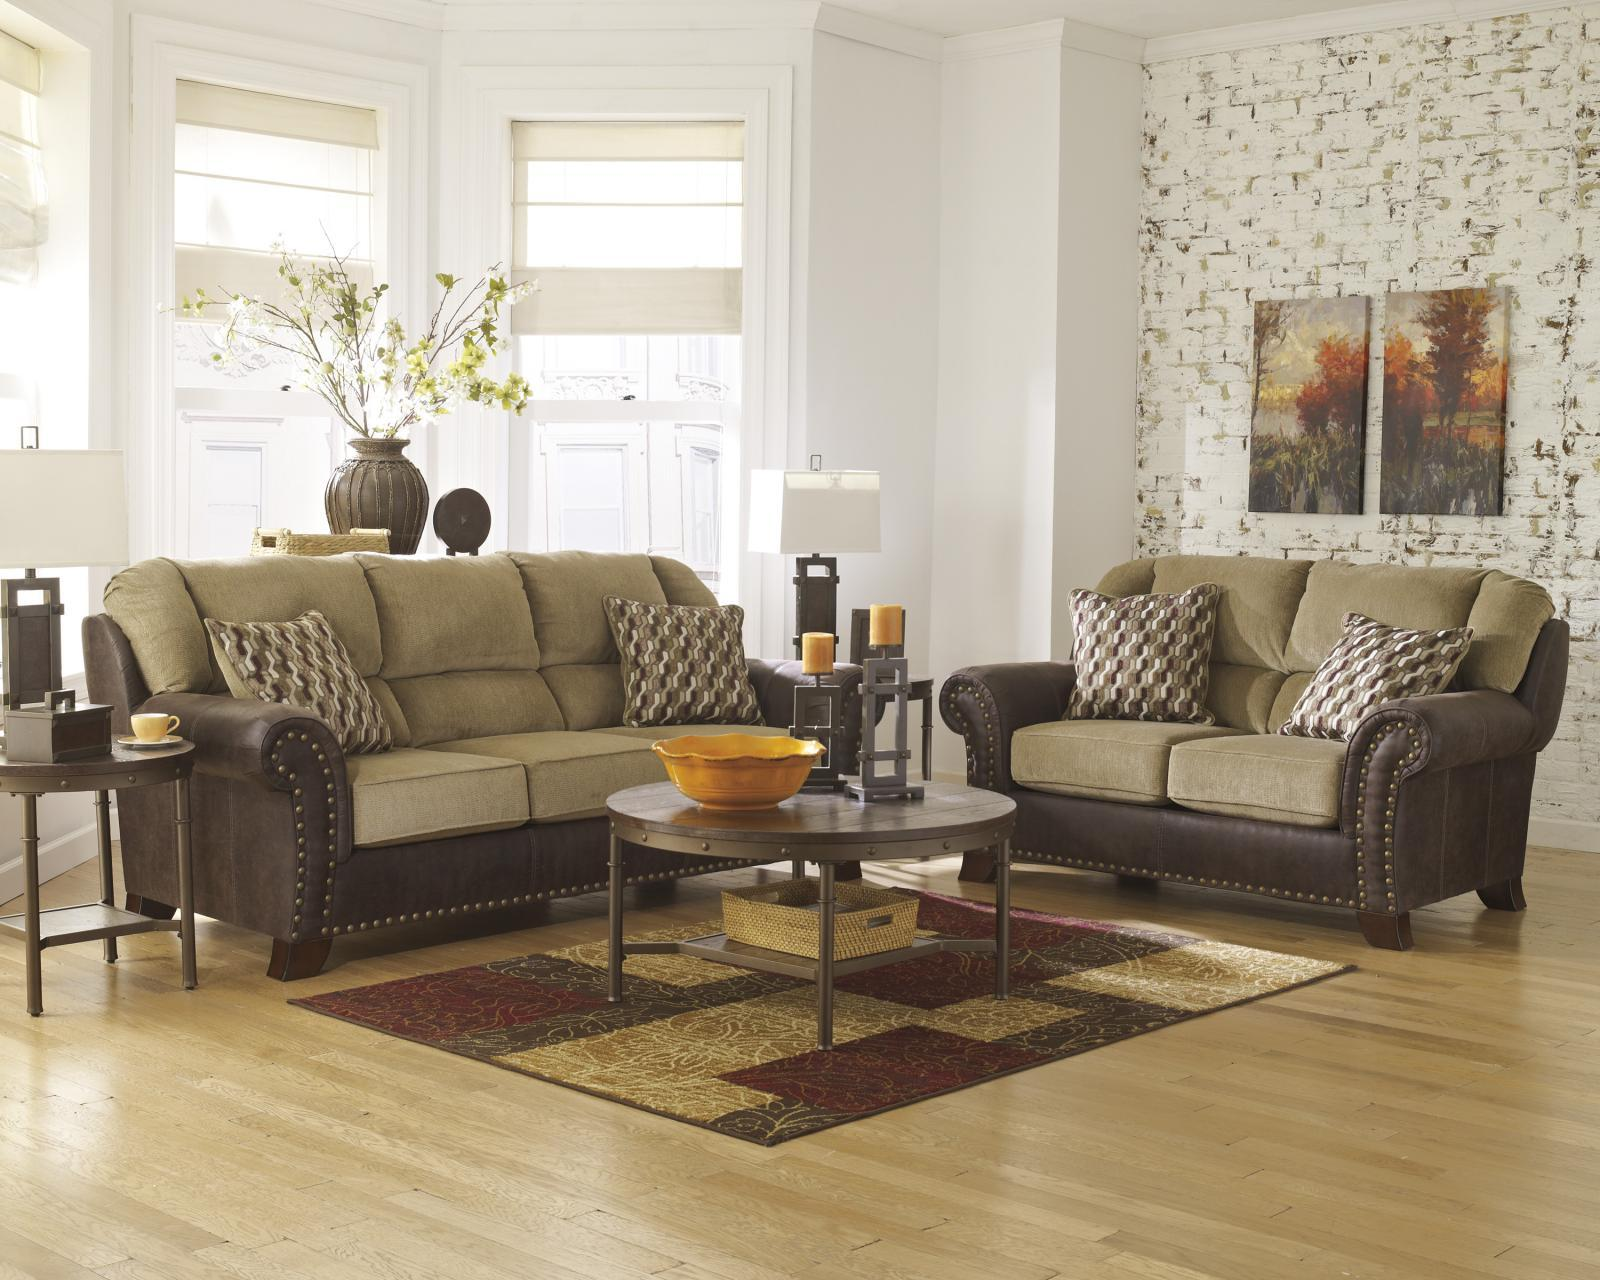 Ashley Vandive Living Room Set 3pcs in Sand Upholstery Fabric Contemporary Style